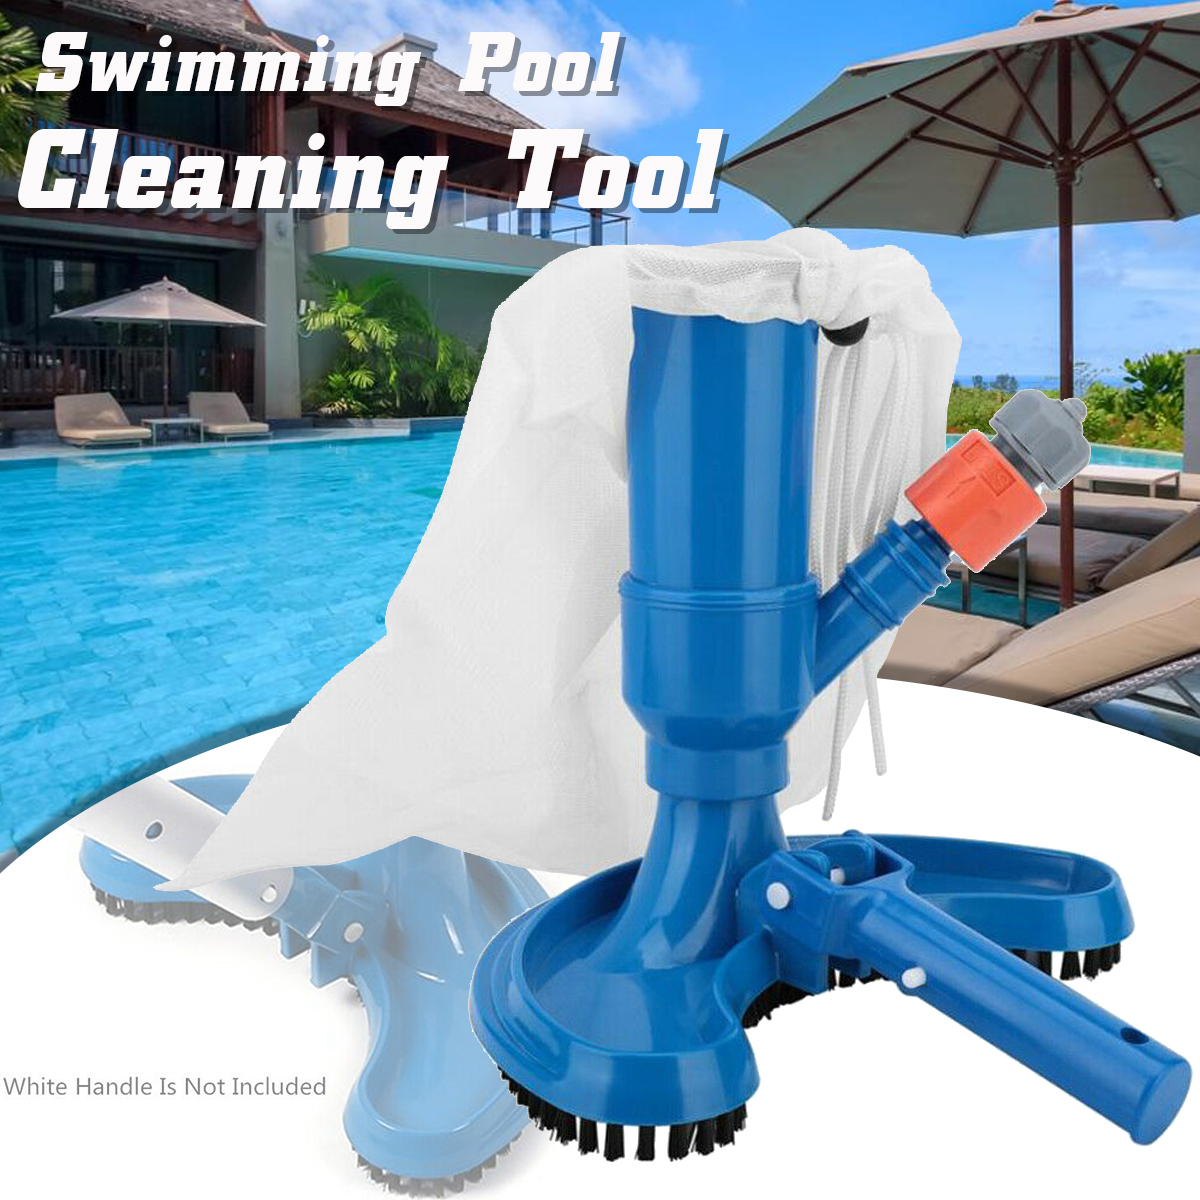 Details about Mini Durable Easy Use Vacuum Cleaner Swimming Pool Cleaning  Tool Suction Head